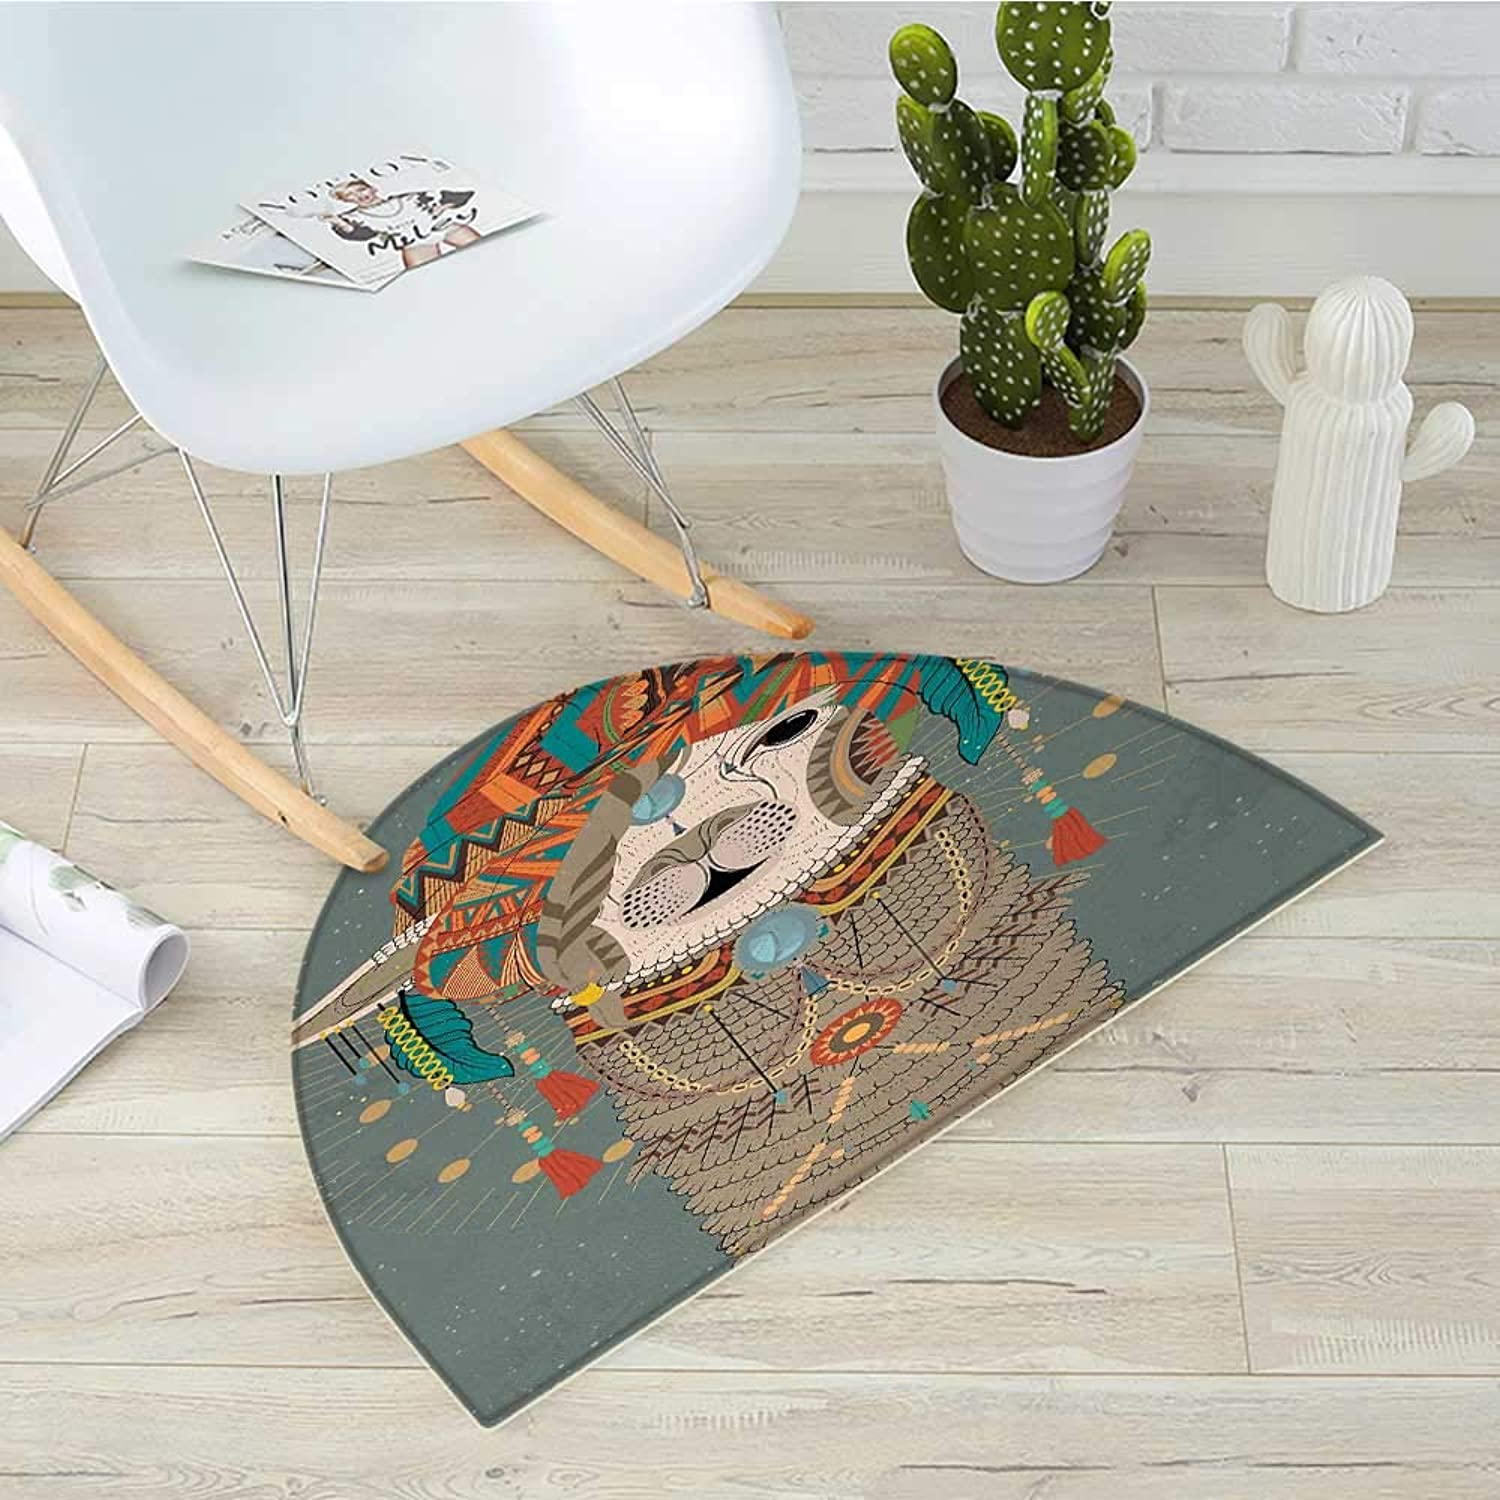 Llama Half Round Door mats colorful Headwear Wearing Llama with Accessories Earrings Necklace Abstract Animal Bathroom Mat H 39.3  xD 59  Multicolor